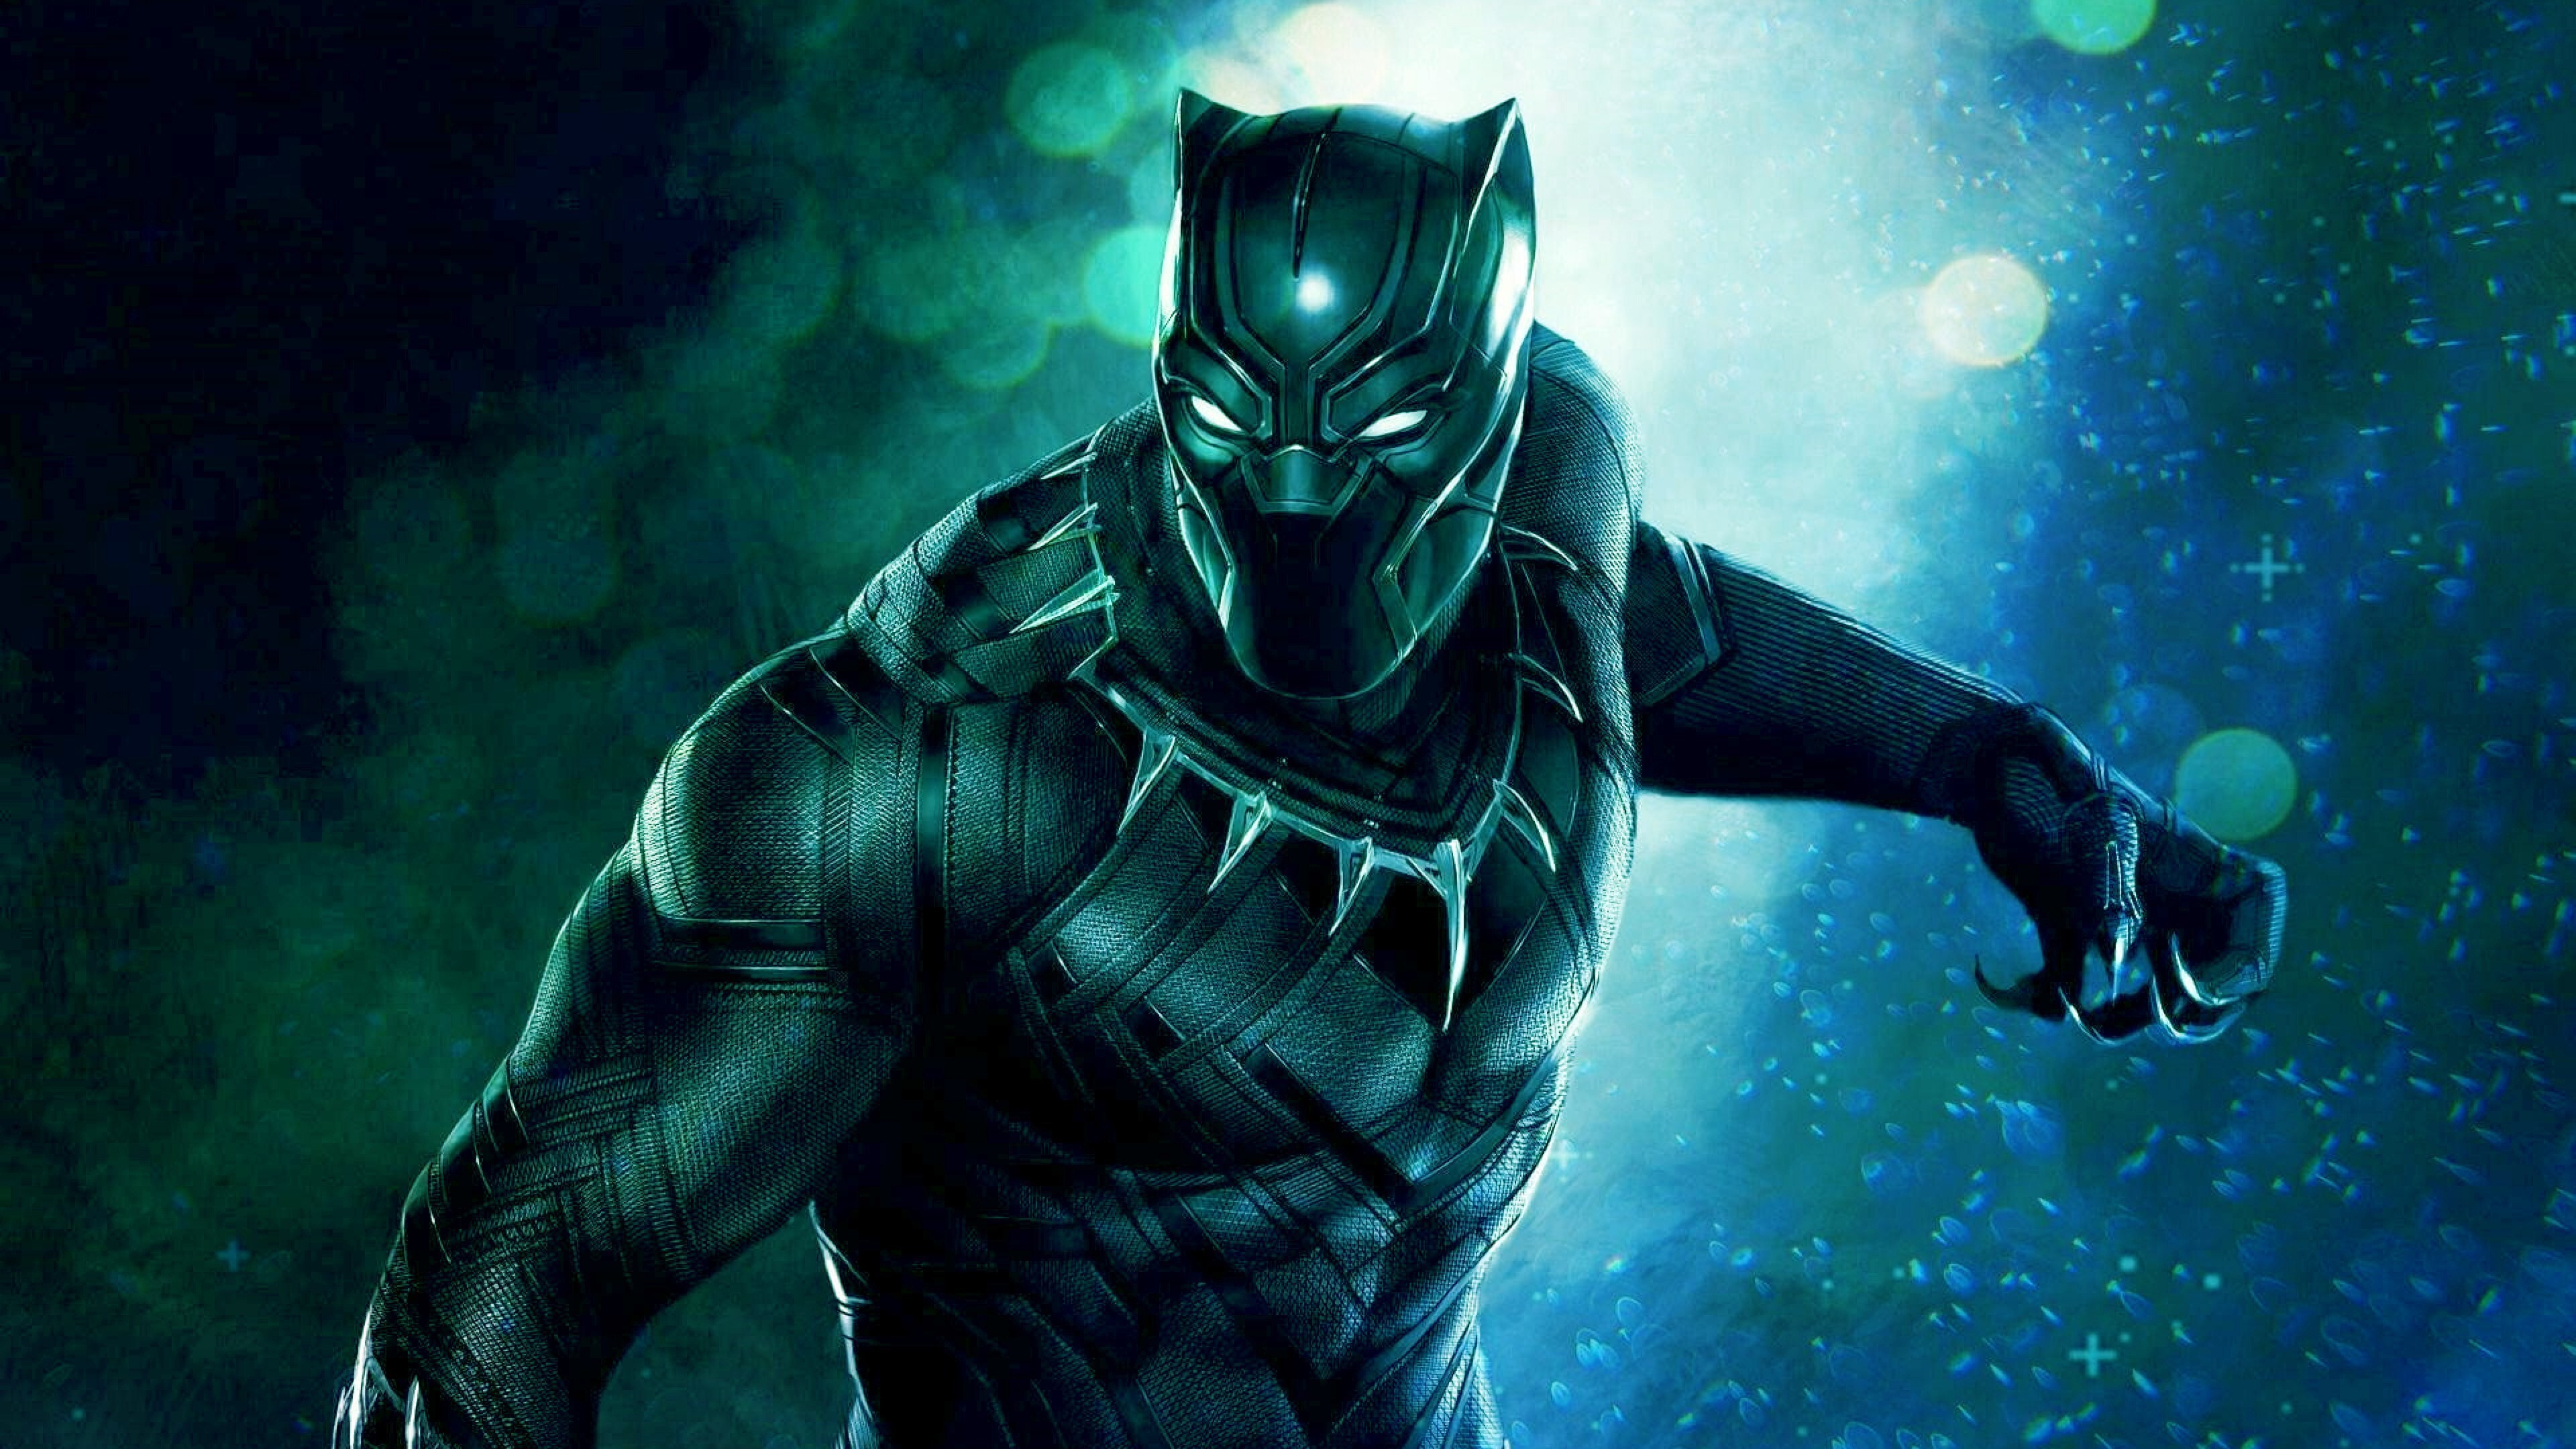 4k Image Of Black Panther Superhero Hd Wallpapers